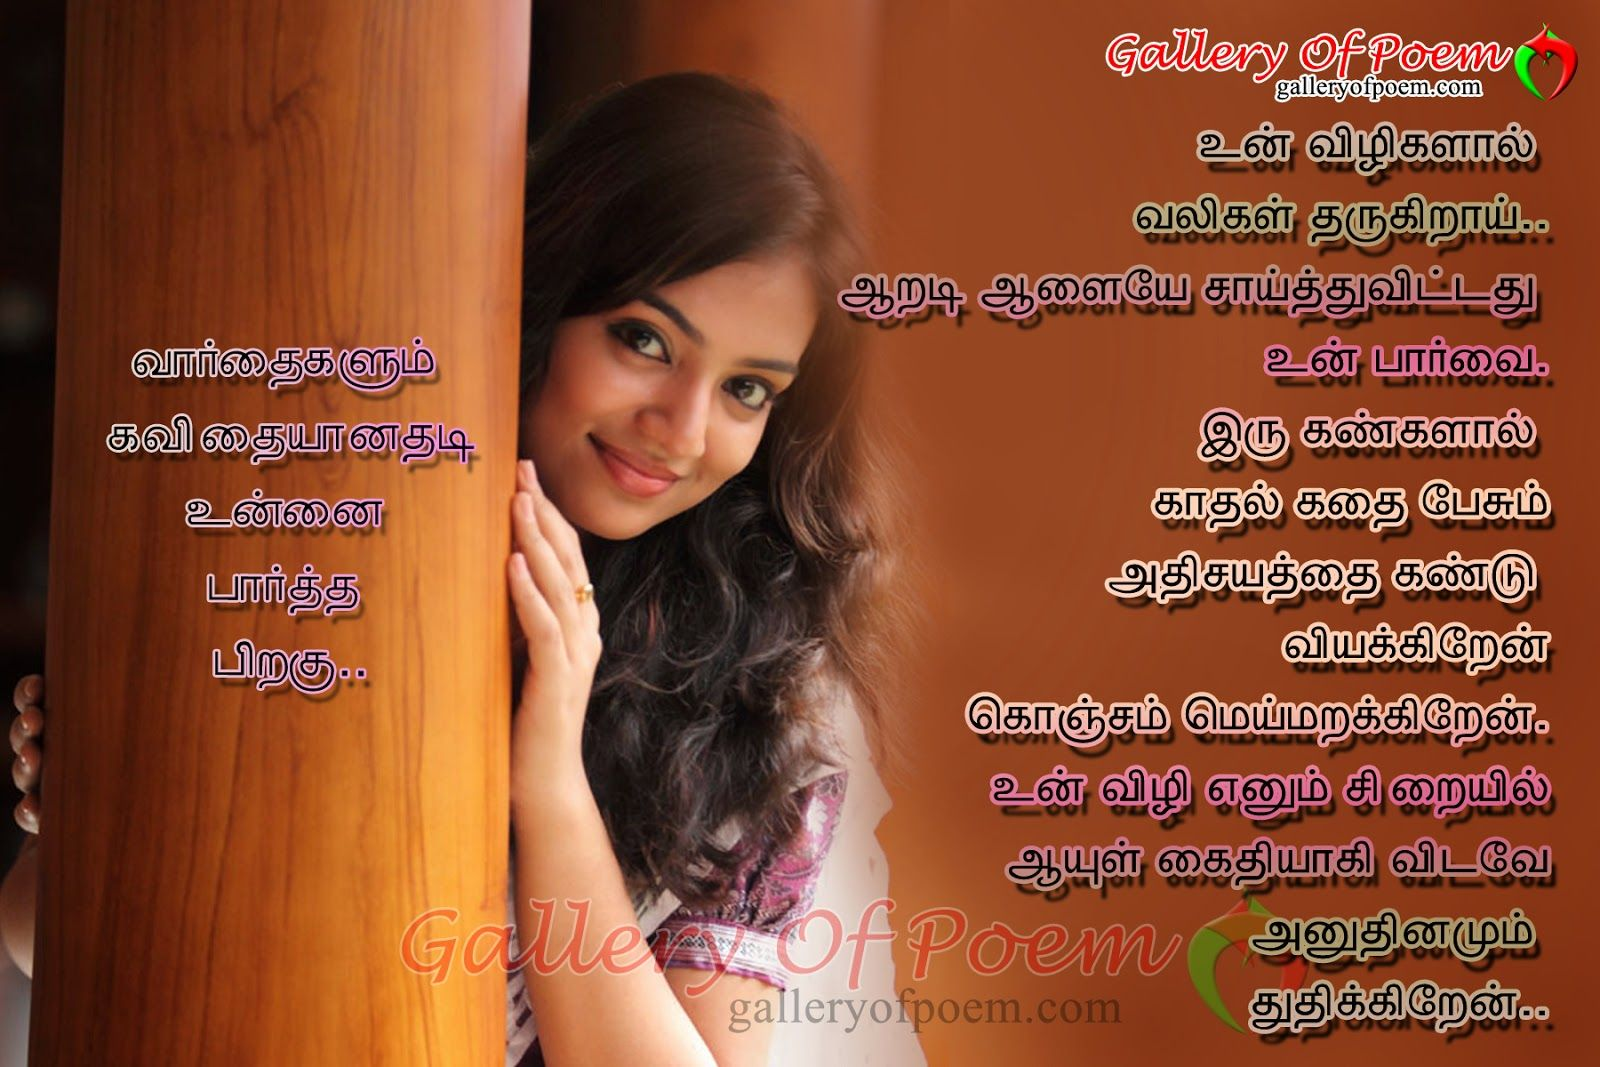 beautiful love quotes for him in tamil Tp8MEoaos Tamil